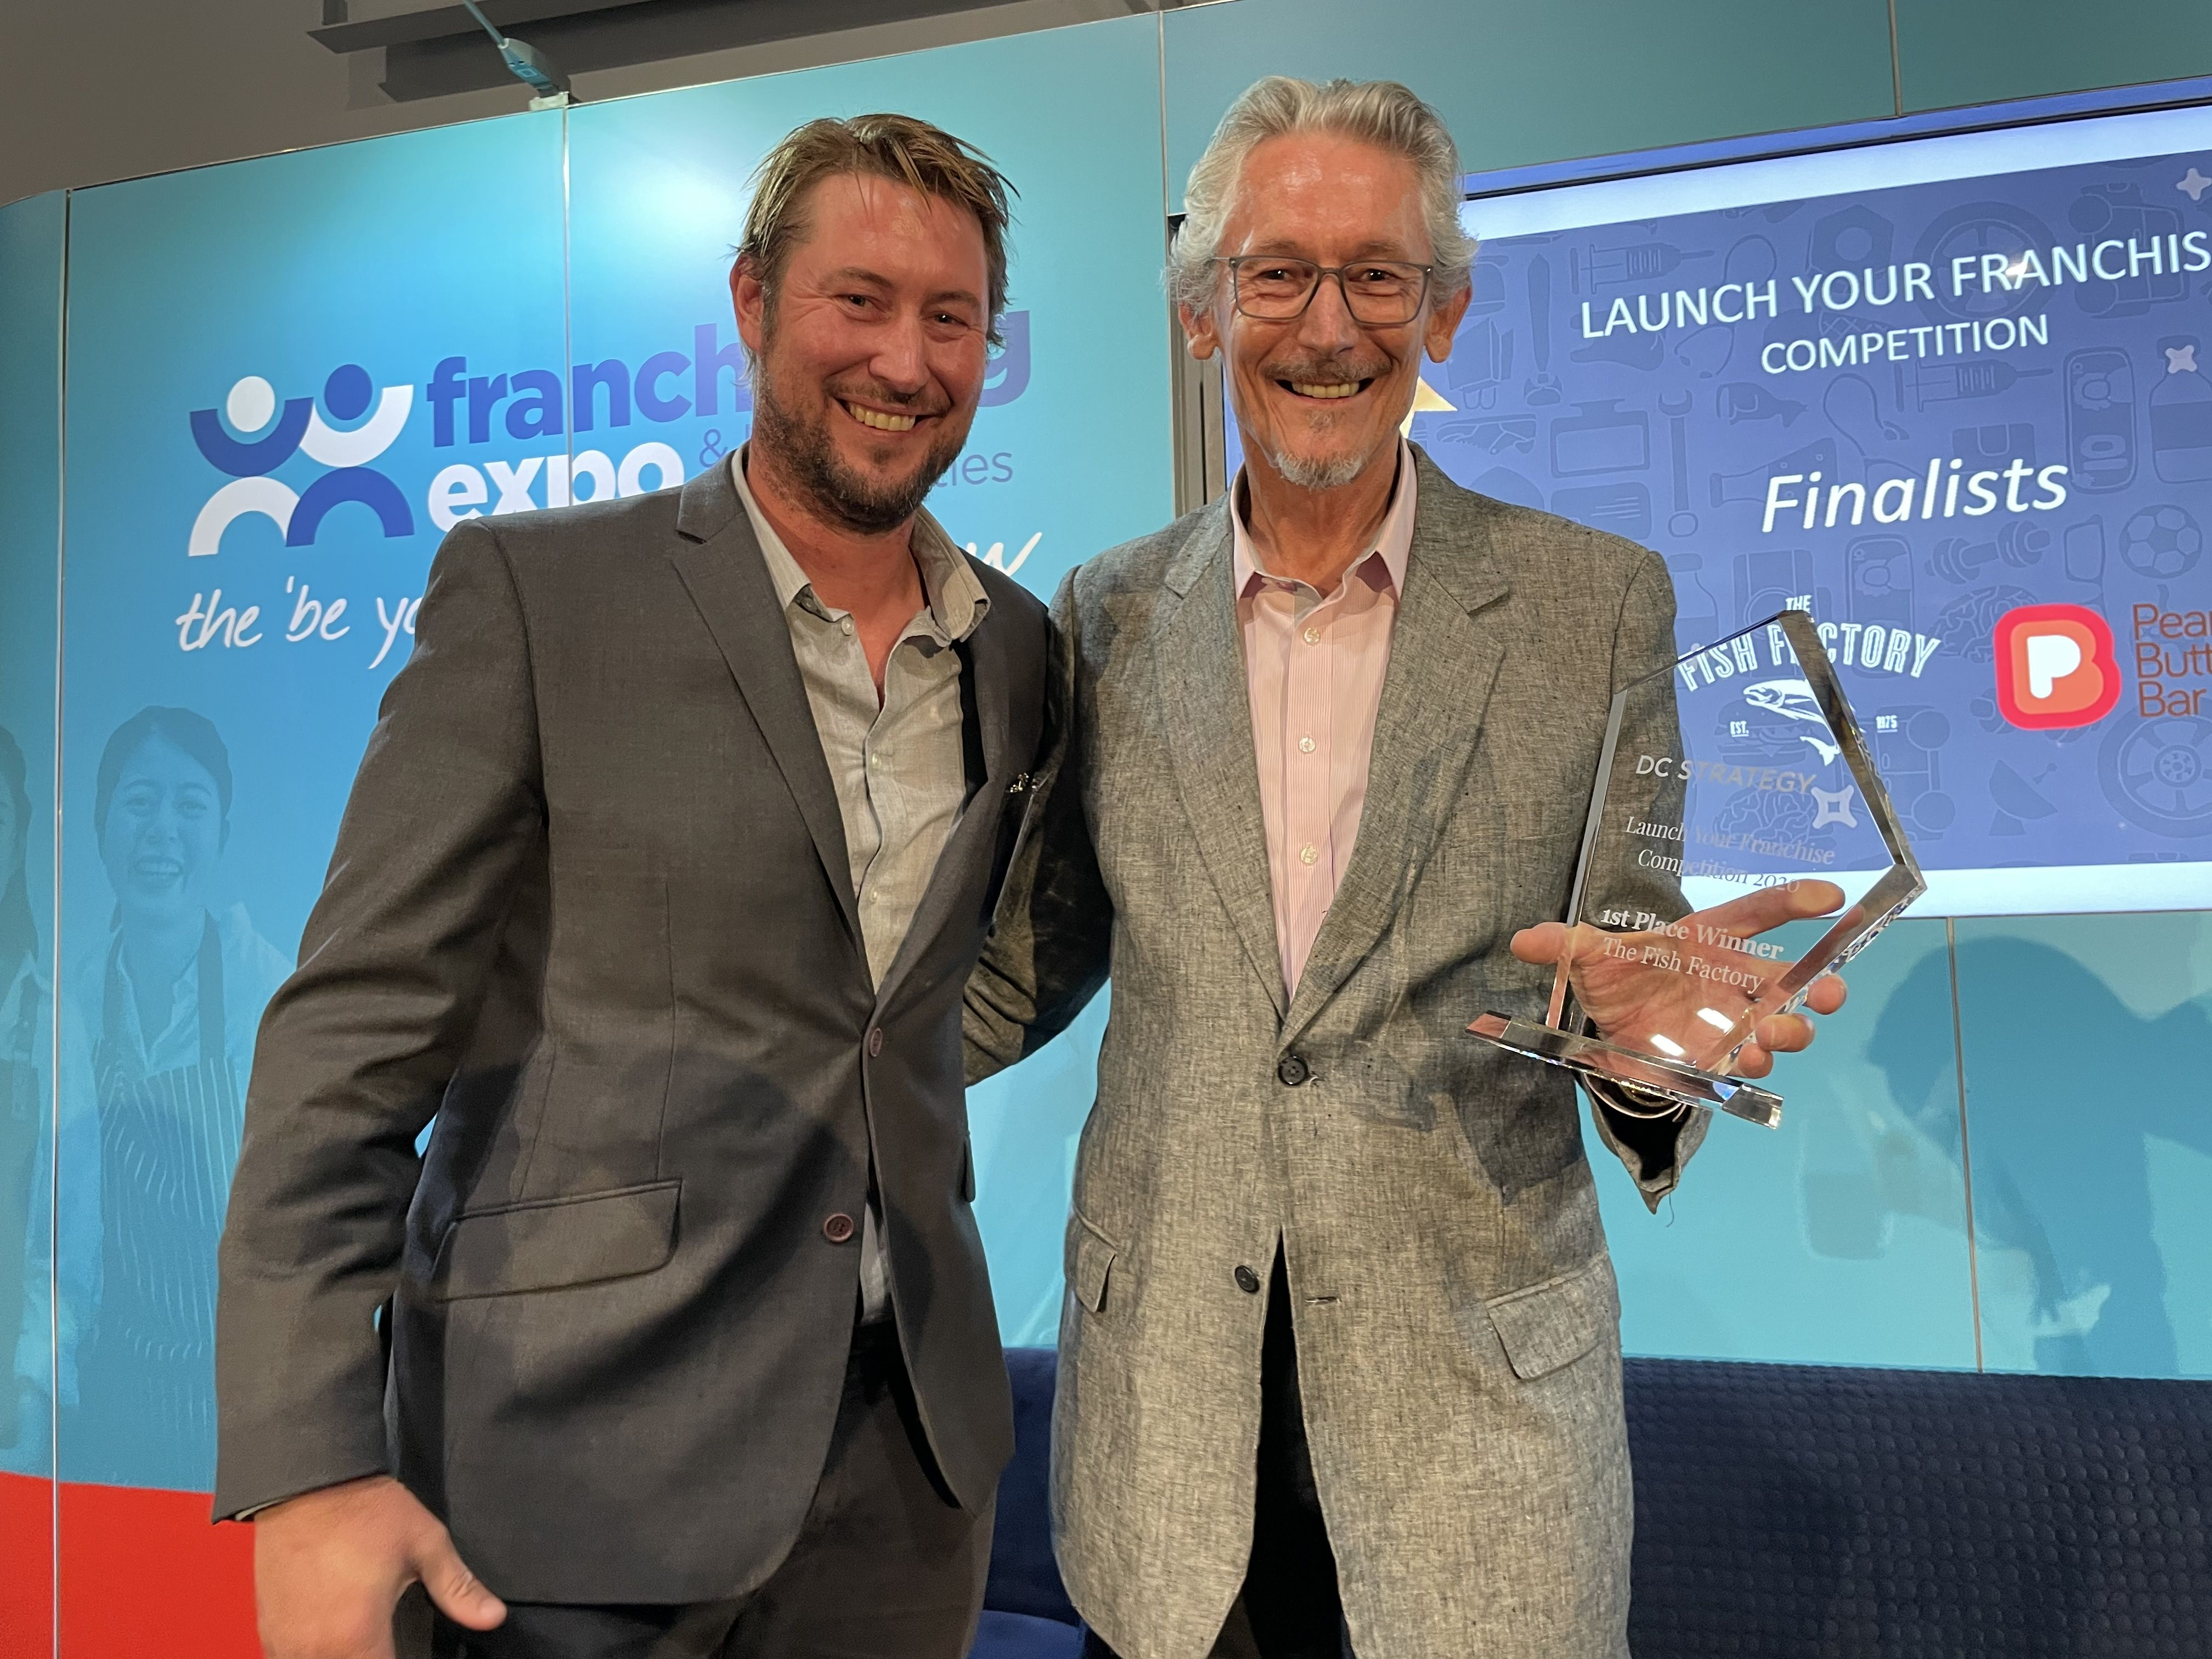 Launch Your Franchise winner announced | Inside Franchise Business Executive